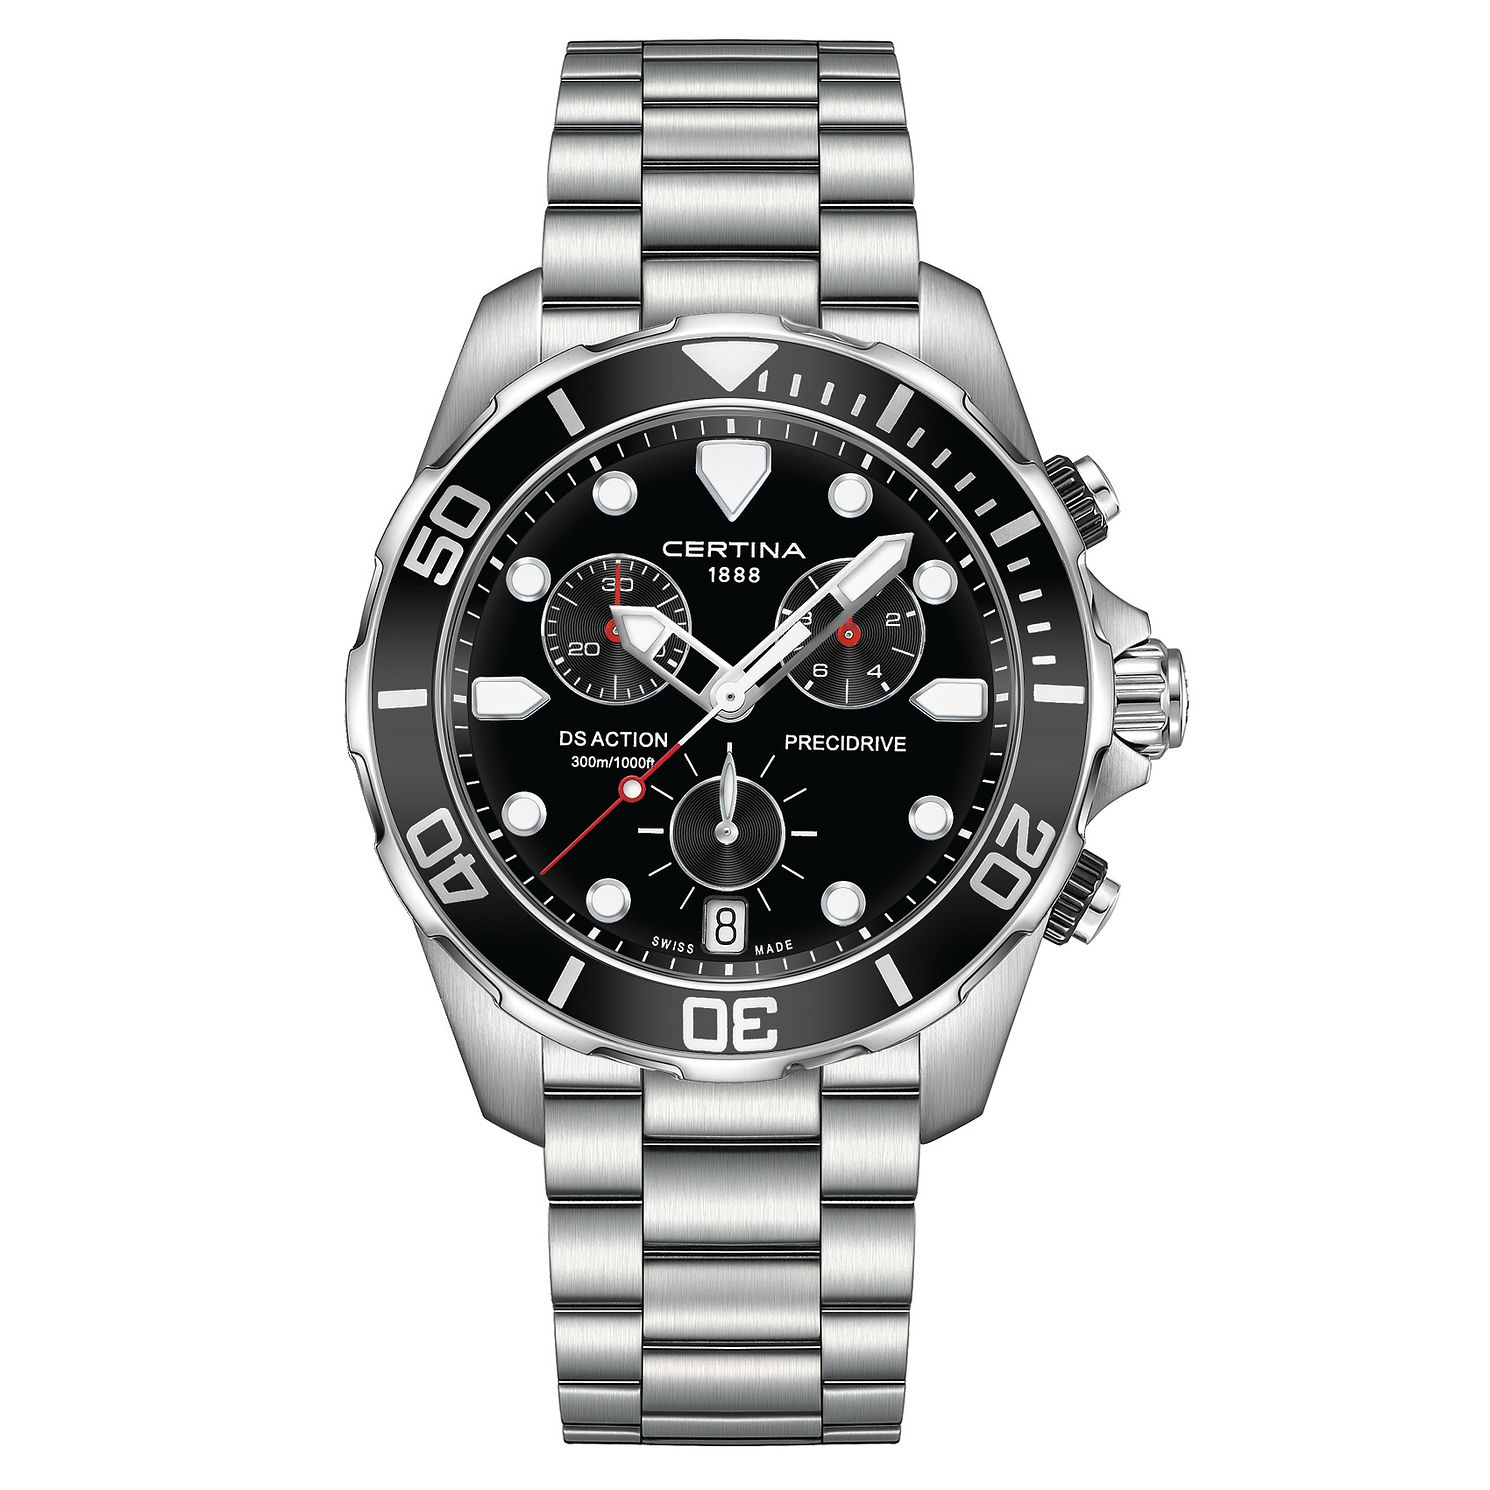 Certina Action Men's Stainless Steel Bracelet Watch - Product number 3636917